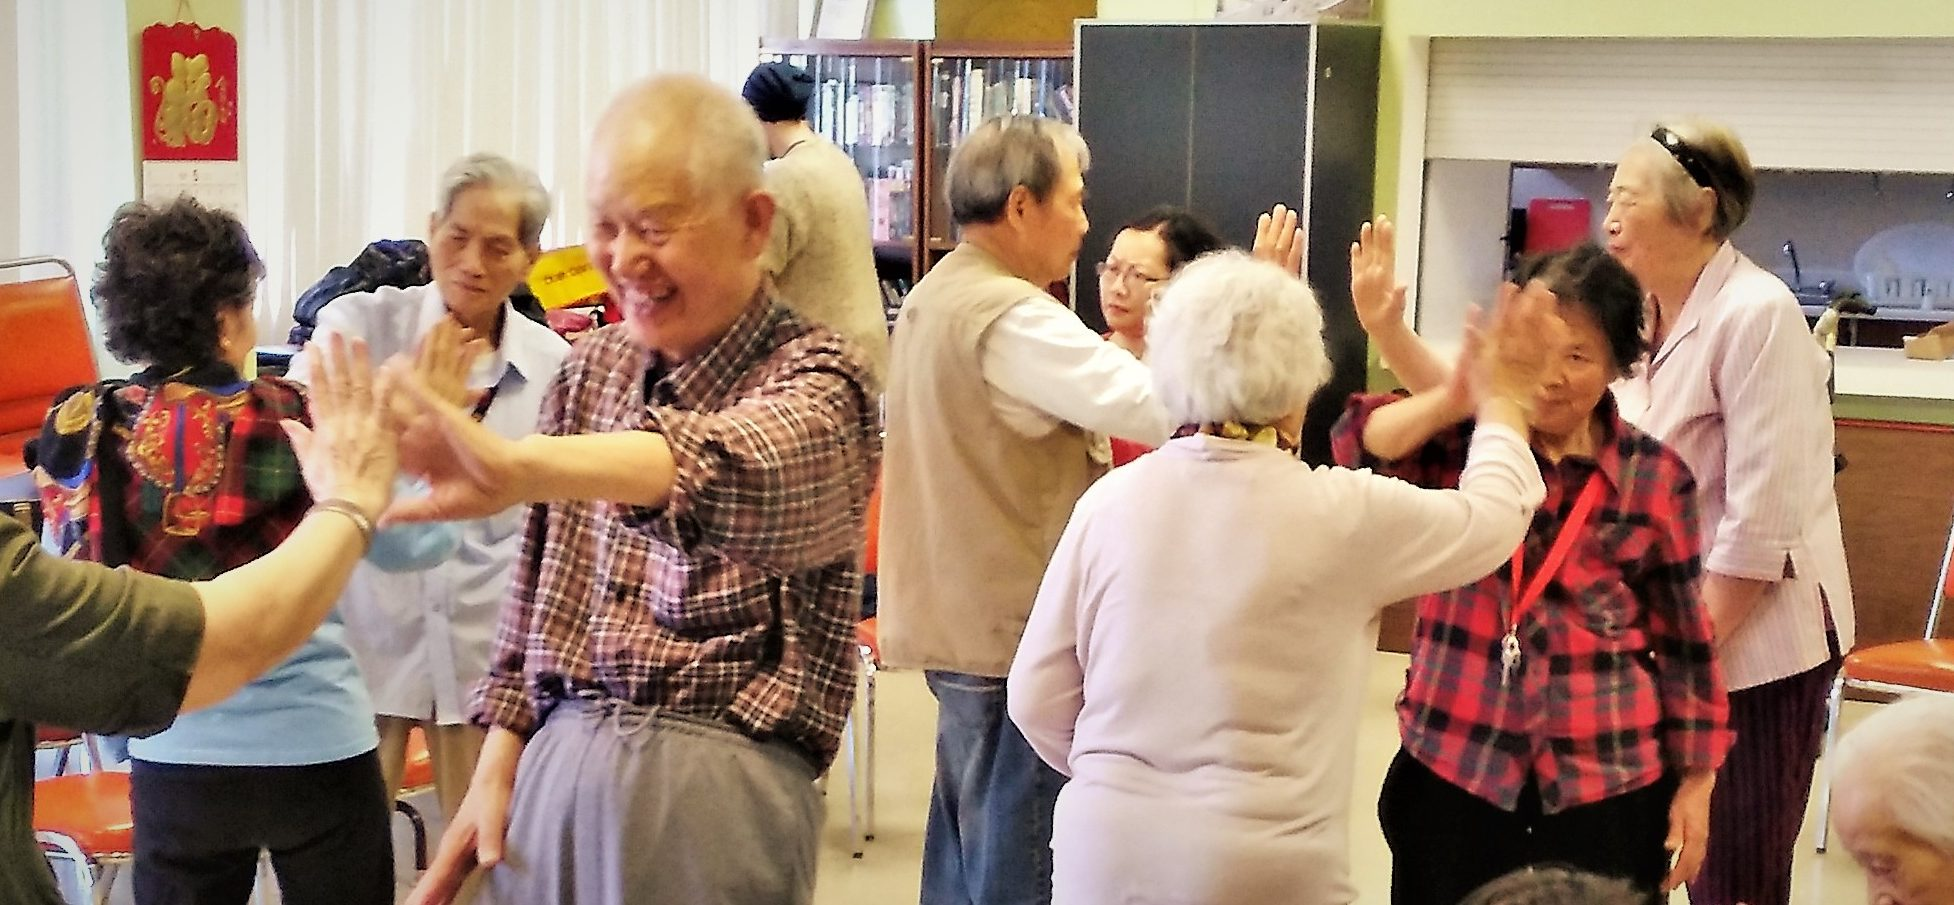 A group of older adults engaged in a mirroring theatre exercise.